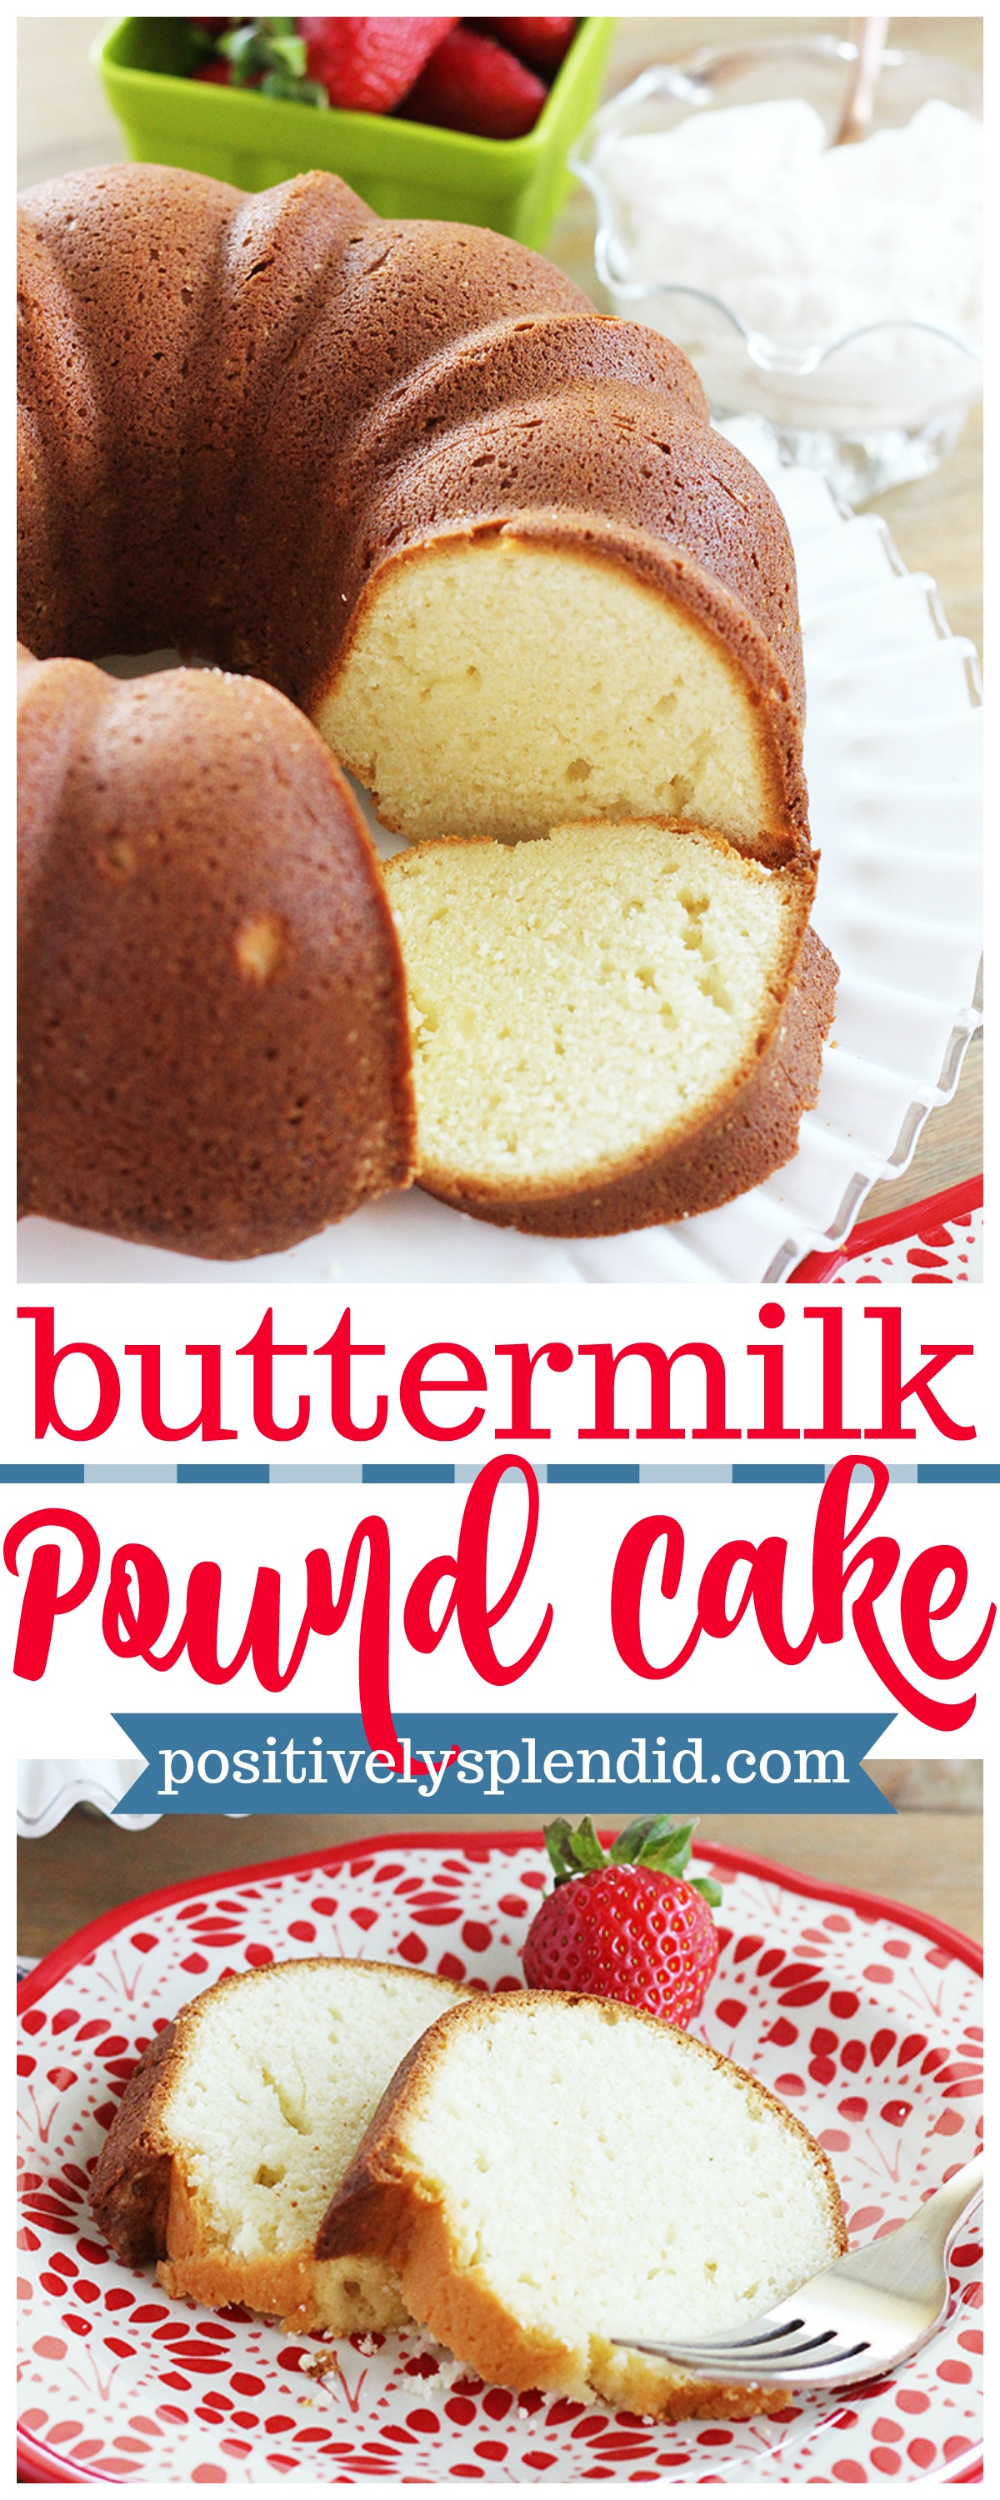 Old Fashioned Buttermilk Pound Cake The Perfect Pound Cake Recipe Buttermilk Pound Cake Pound Cake Recipes Pound Cake Recipes Easy